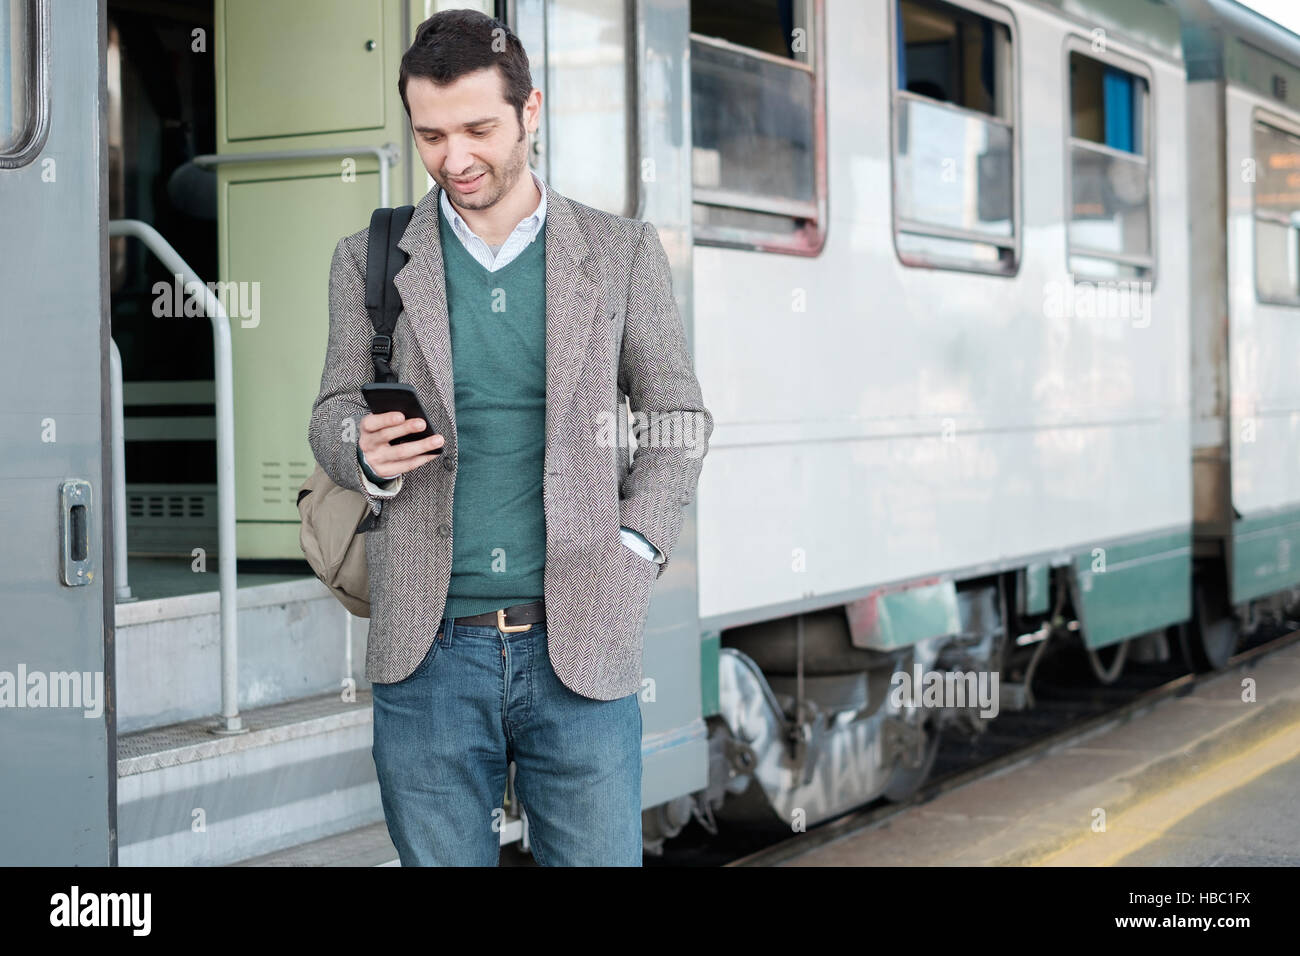 Standing man calling on the phone waiting for the train in a train station platform Stock Photo